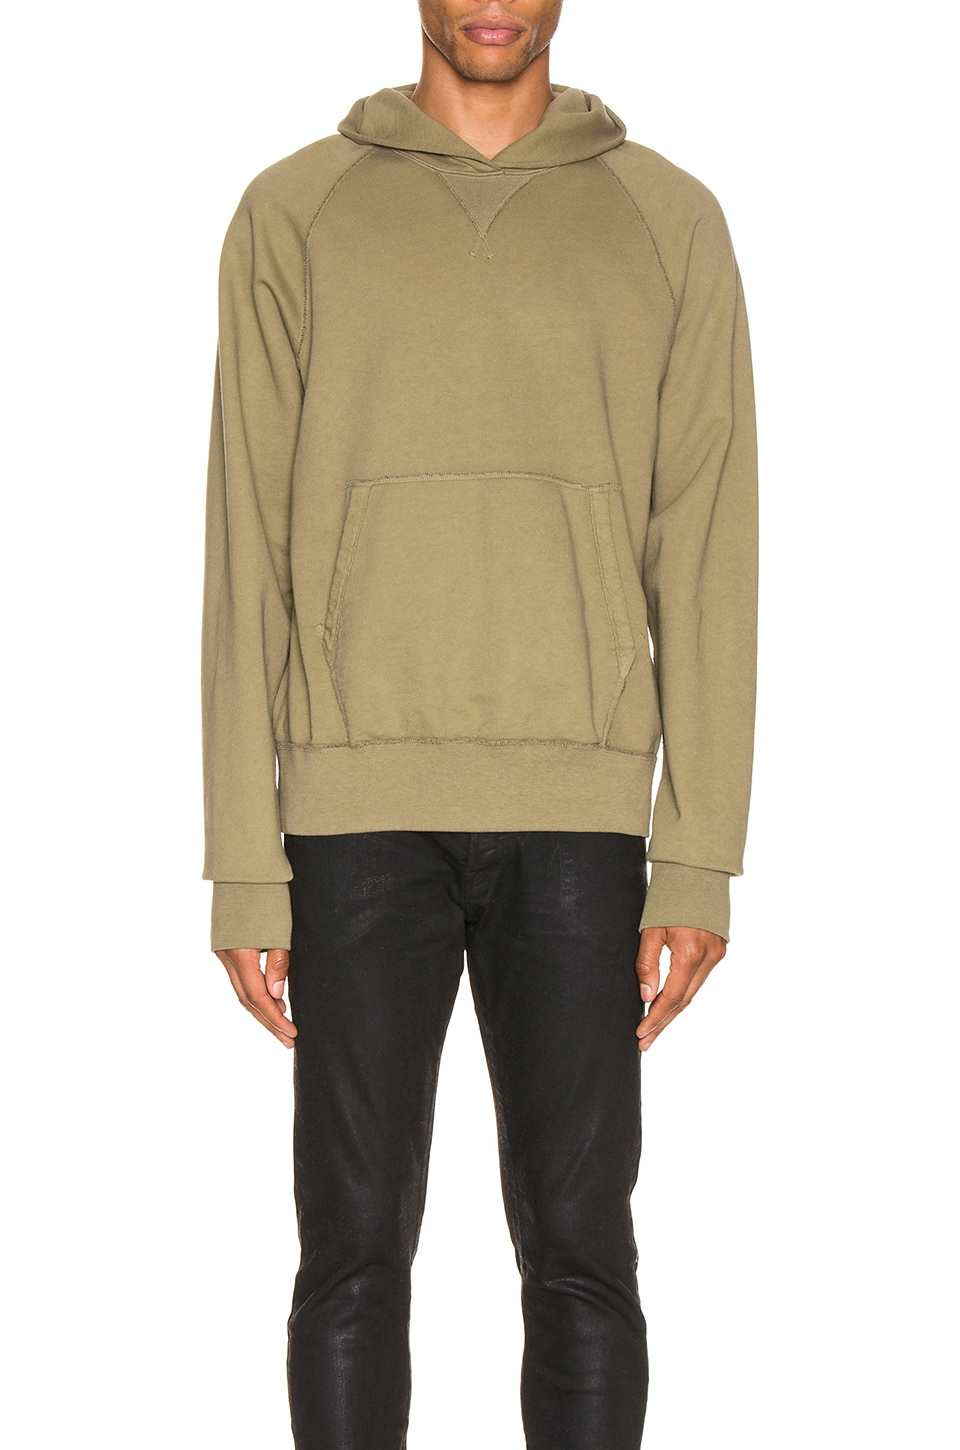 JOHN ELLIOTT Surplus Terry Hoodie in Spruce